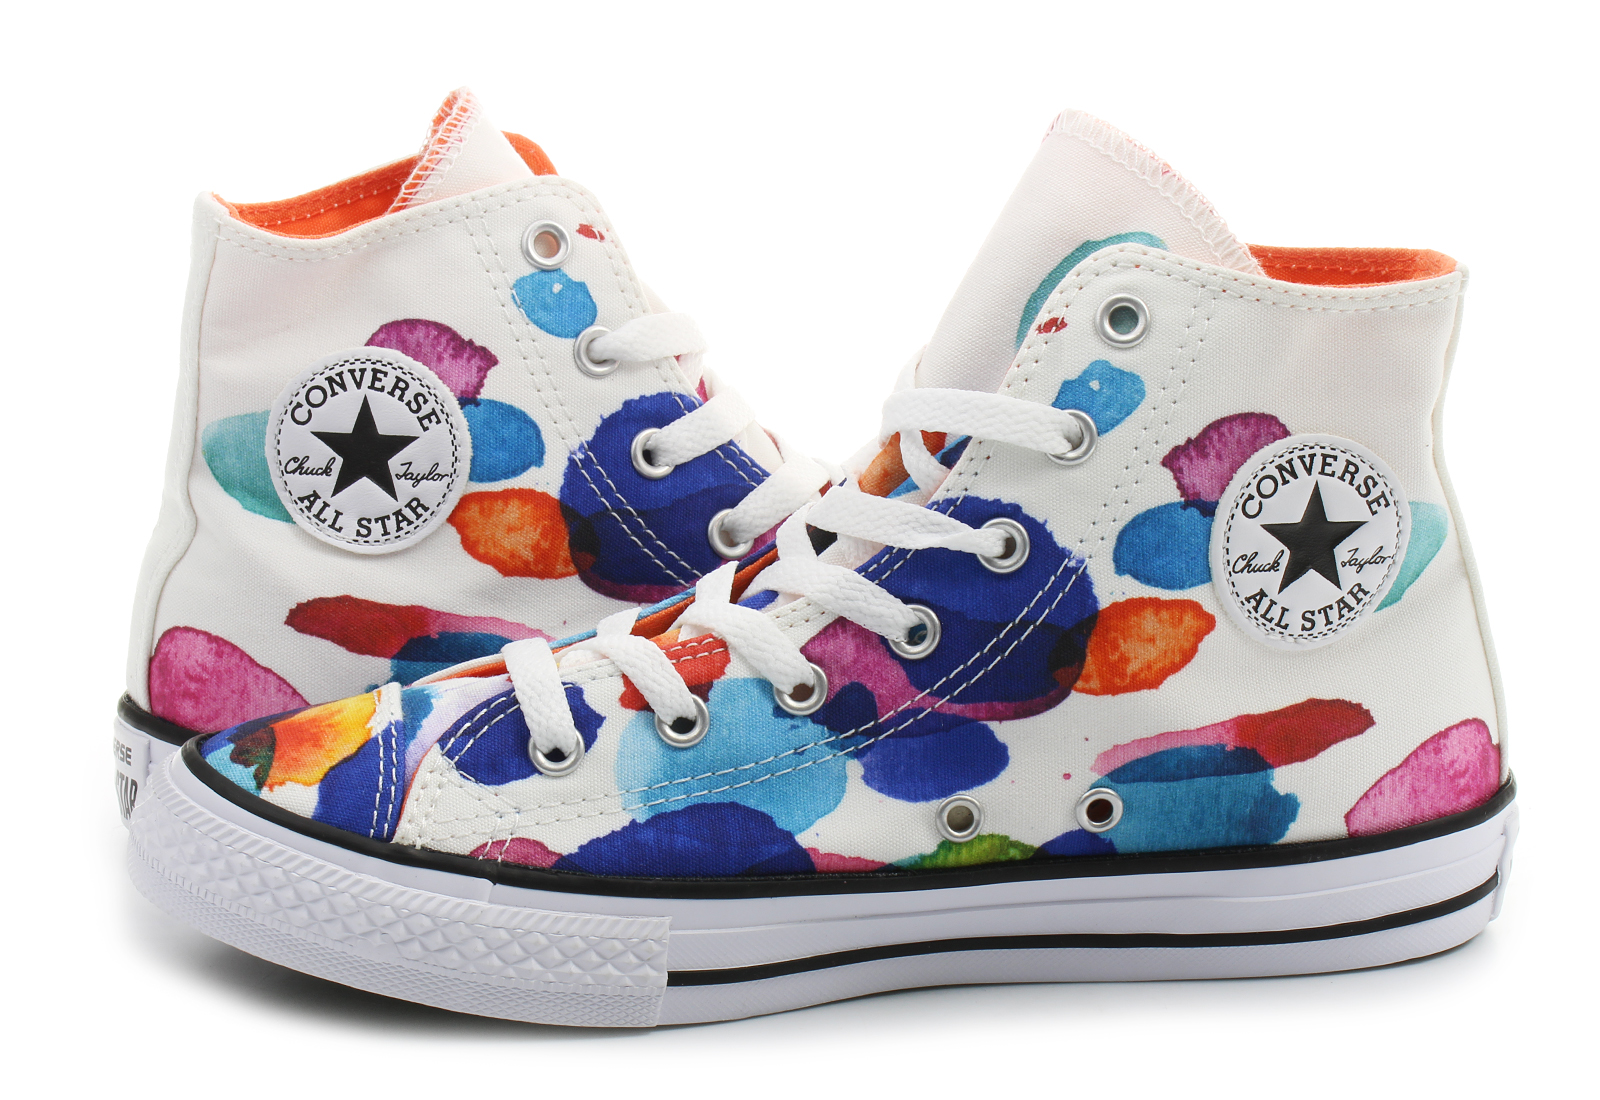 All Star Converse Shoes Online Shopping